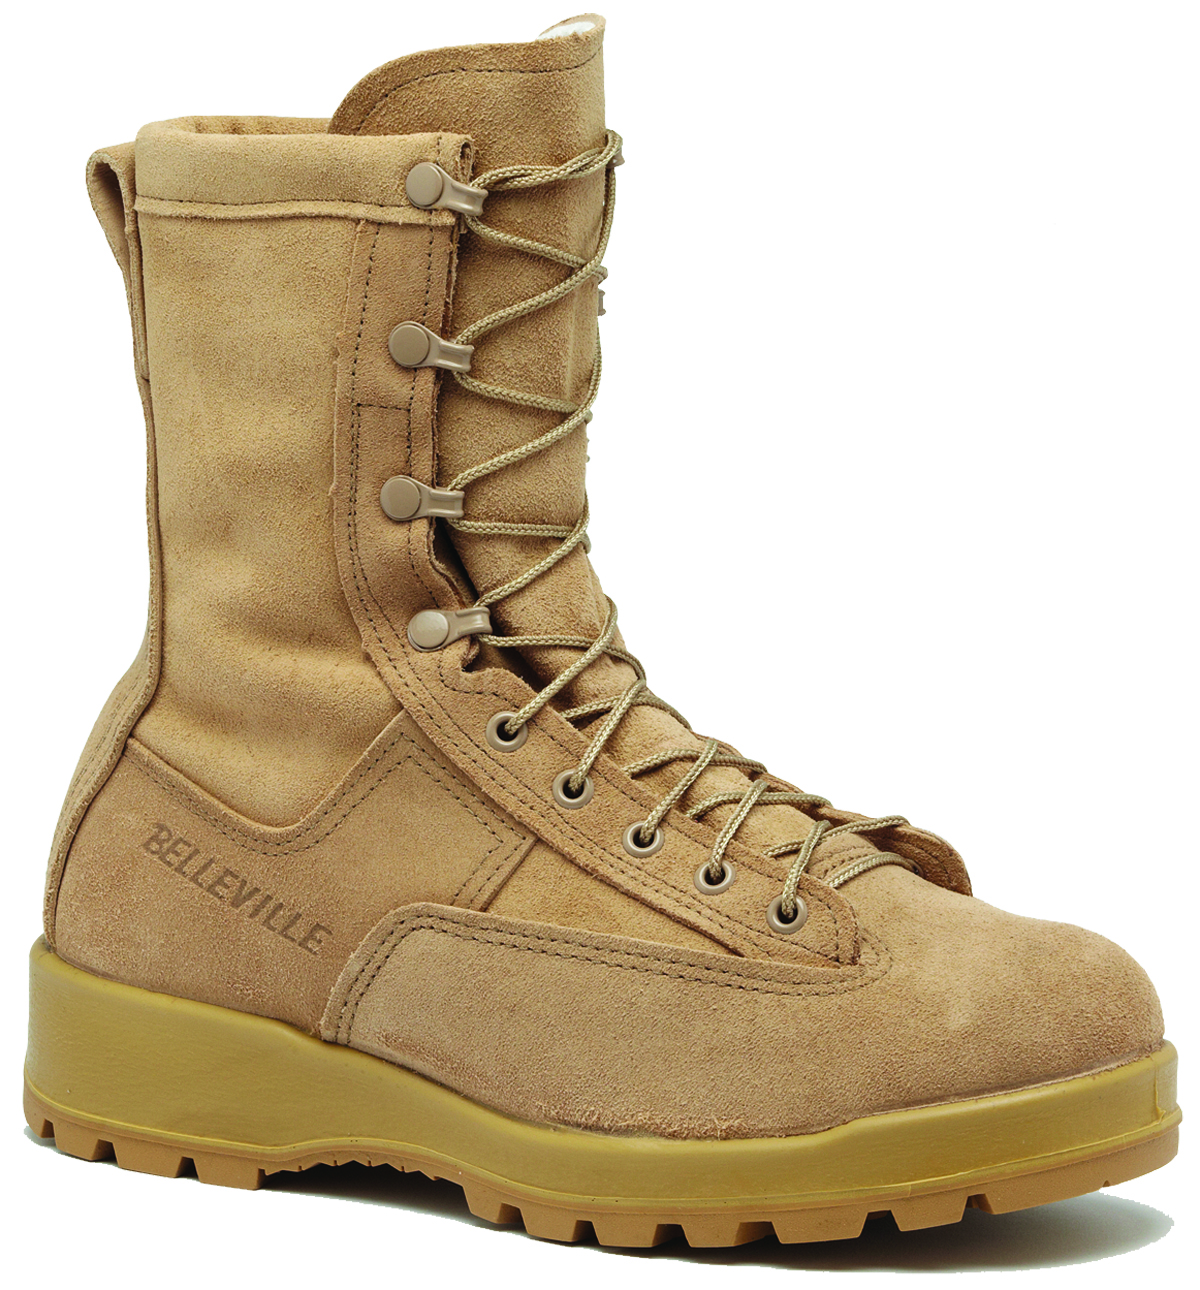 Belleville Waterproof Gore Tex Boots - Free Shipping & Exchanges